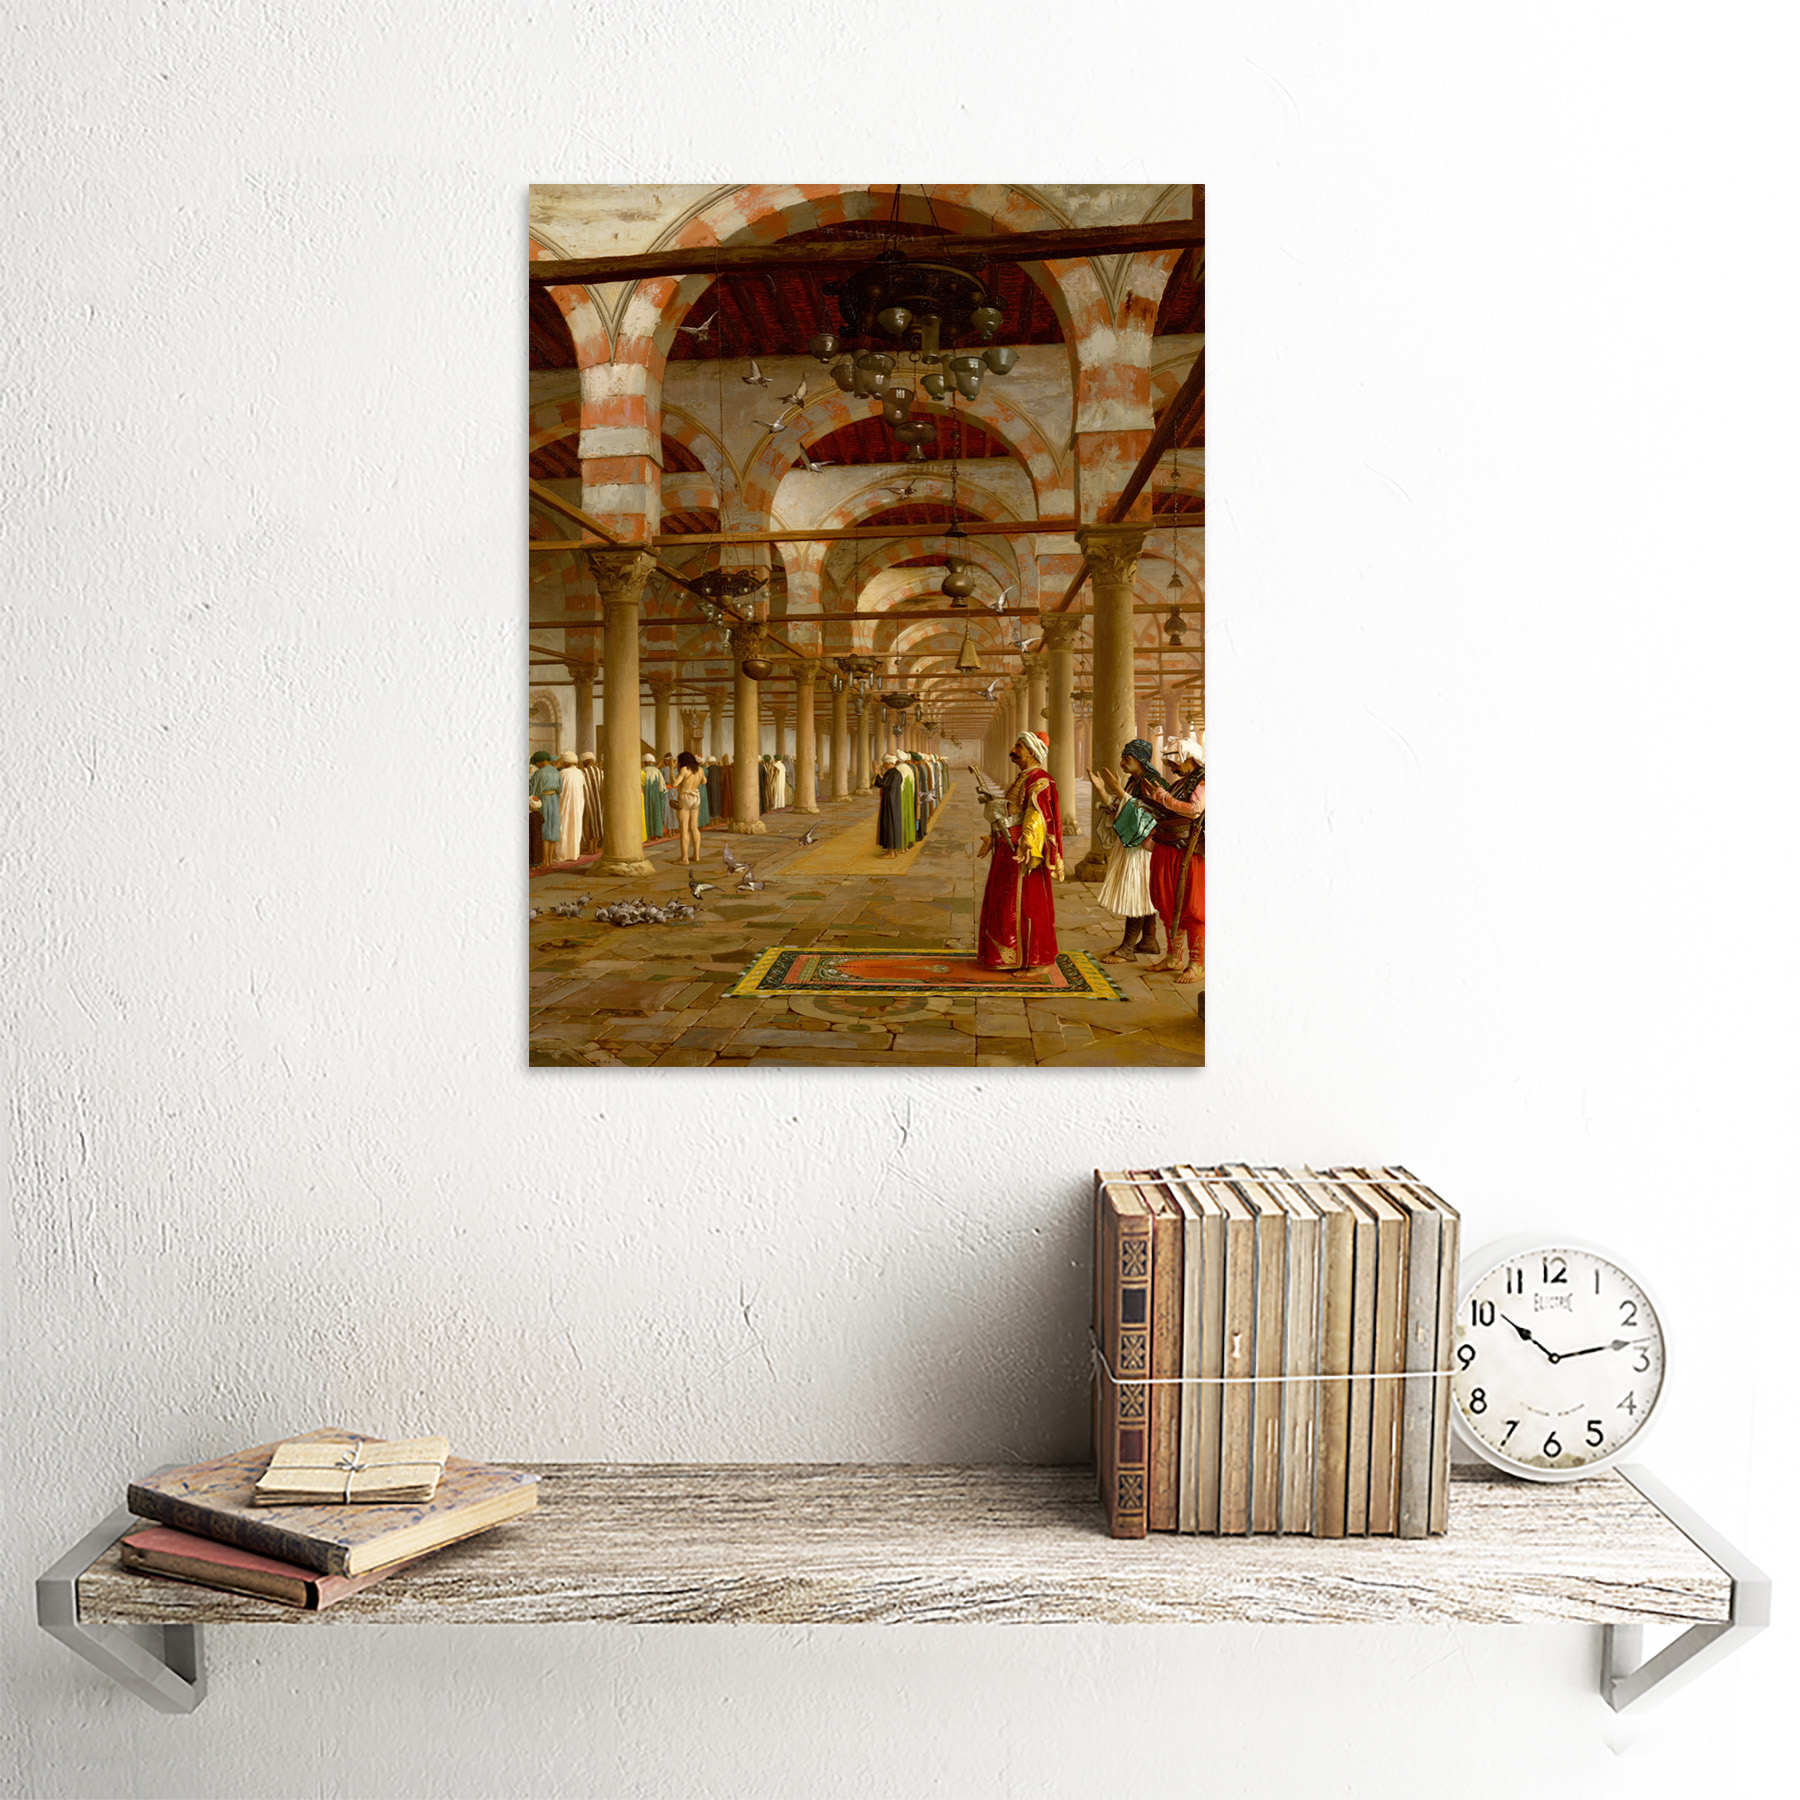 Gerome-Prayer-Mosque-Islamic-Painting-Framed-Wall-Art-Poster thumbnail 23